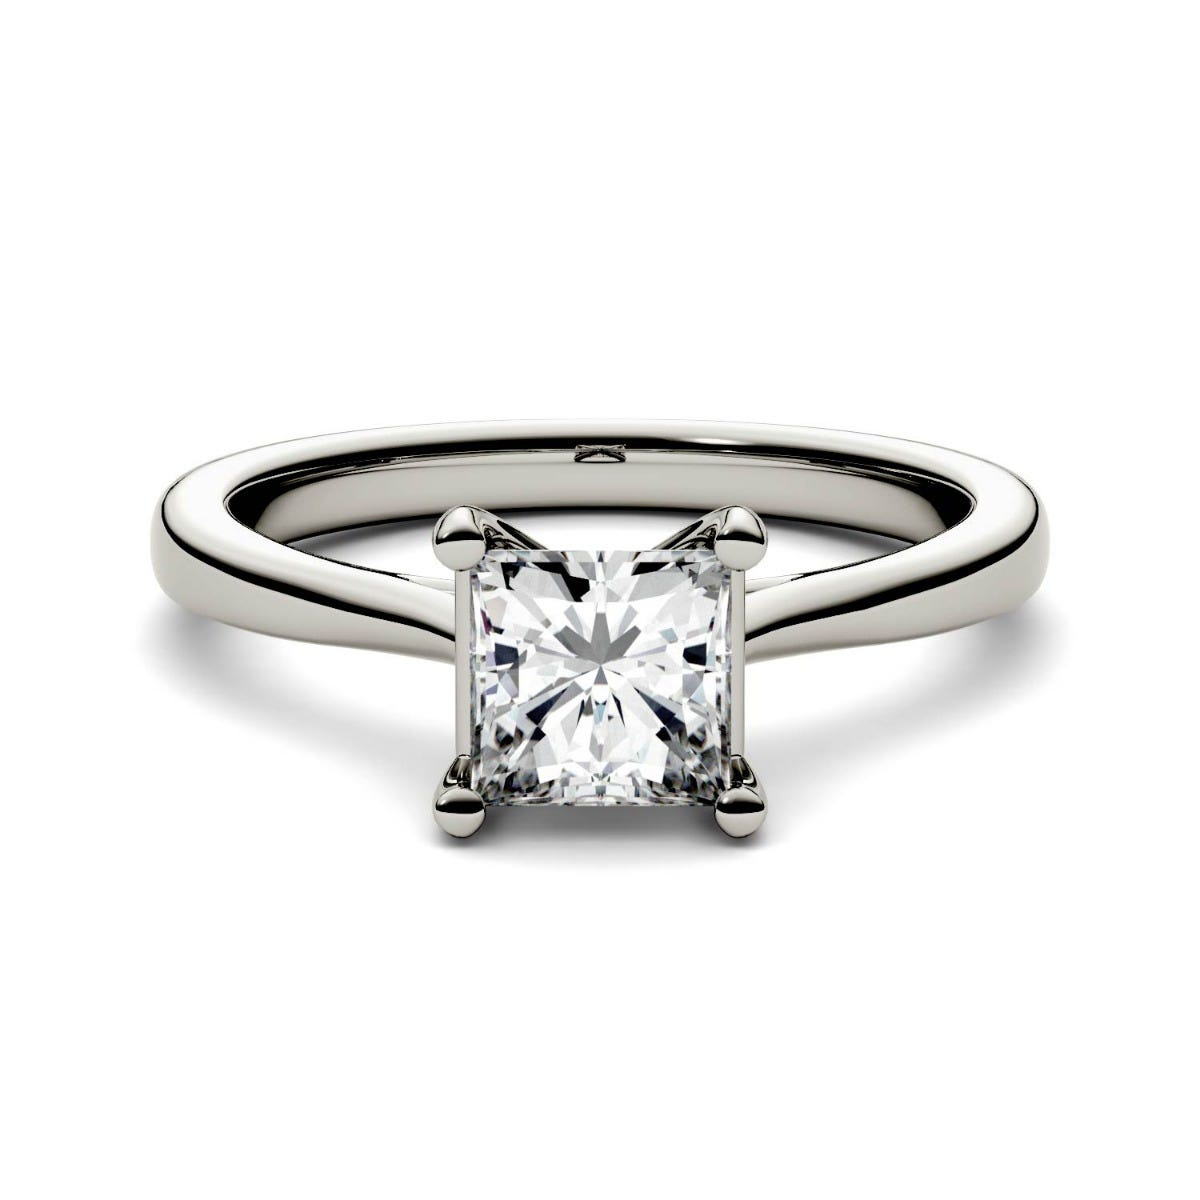 classy engagement setting simple public mm ring archives rings diamond cut attachment in princess trellis viswed